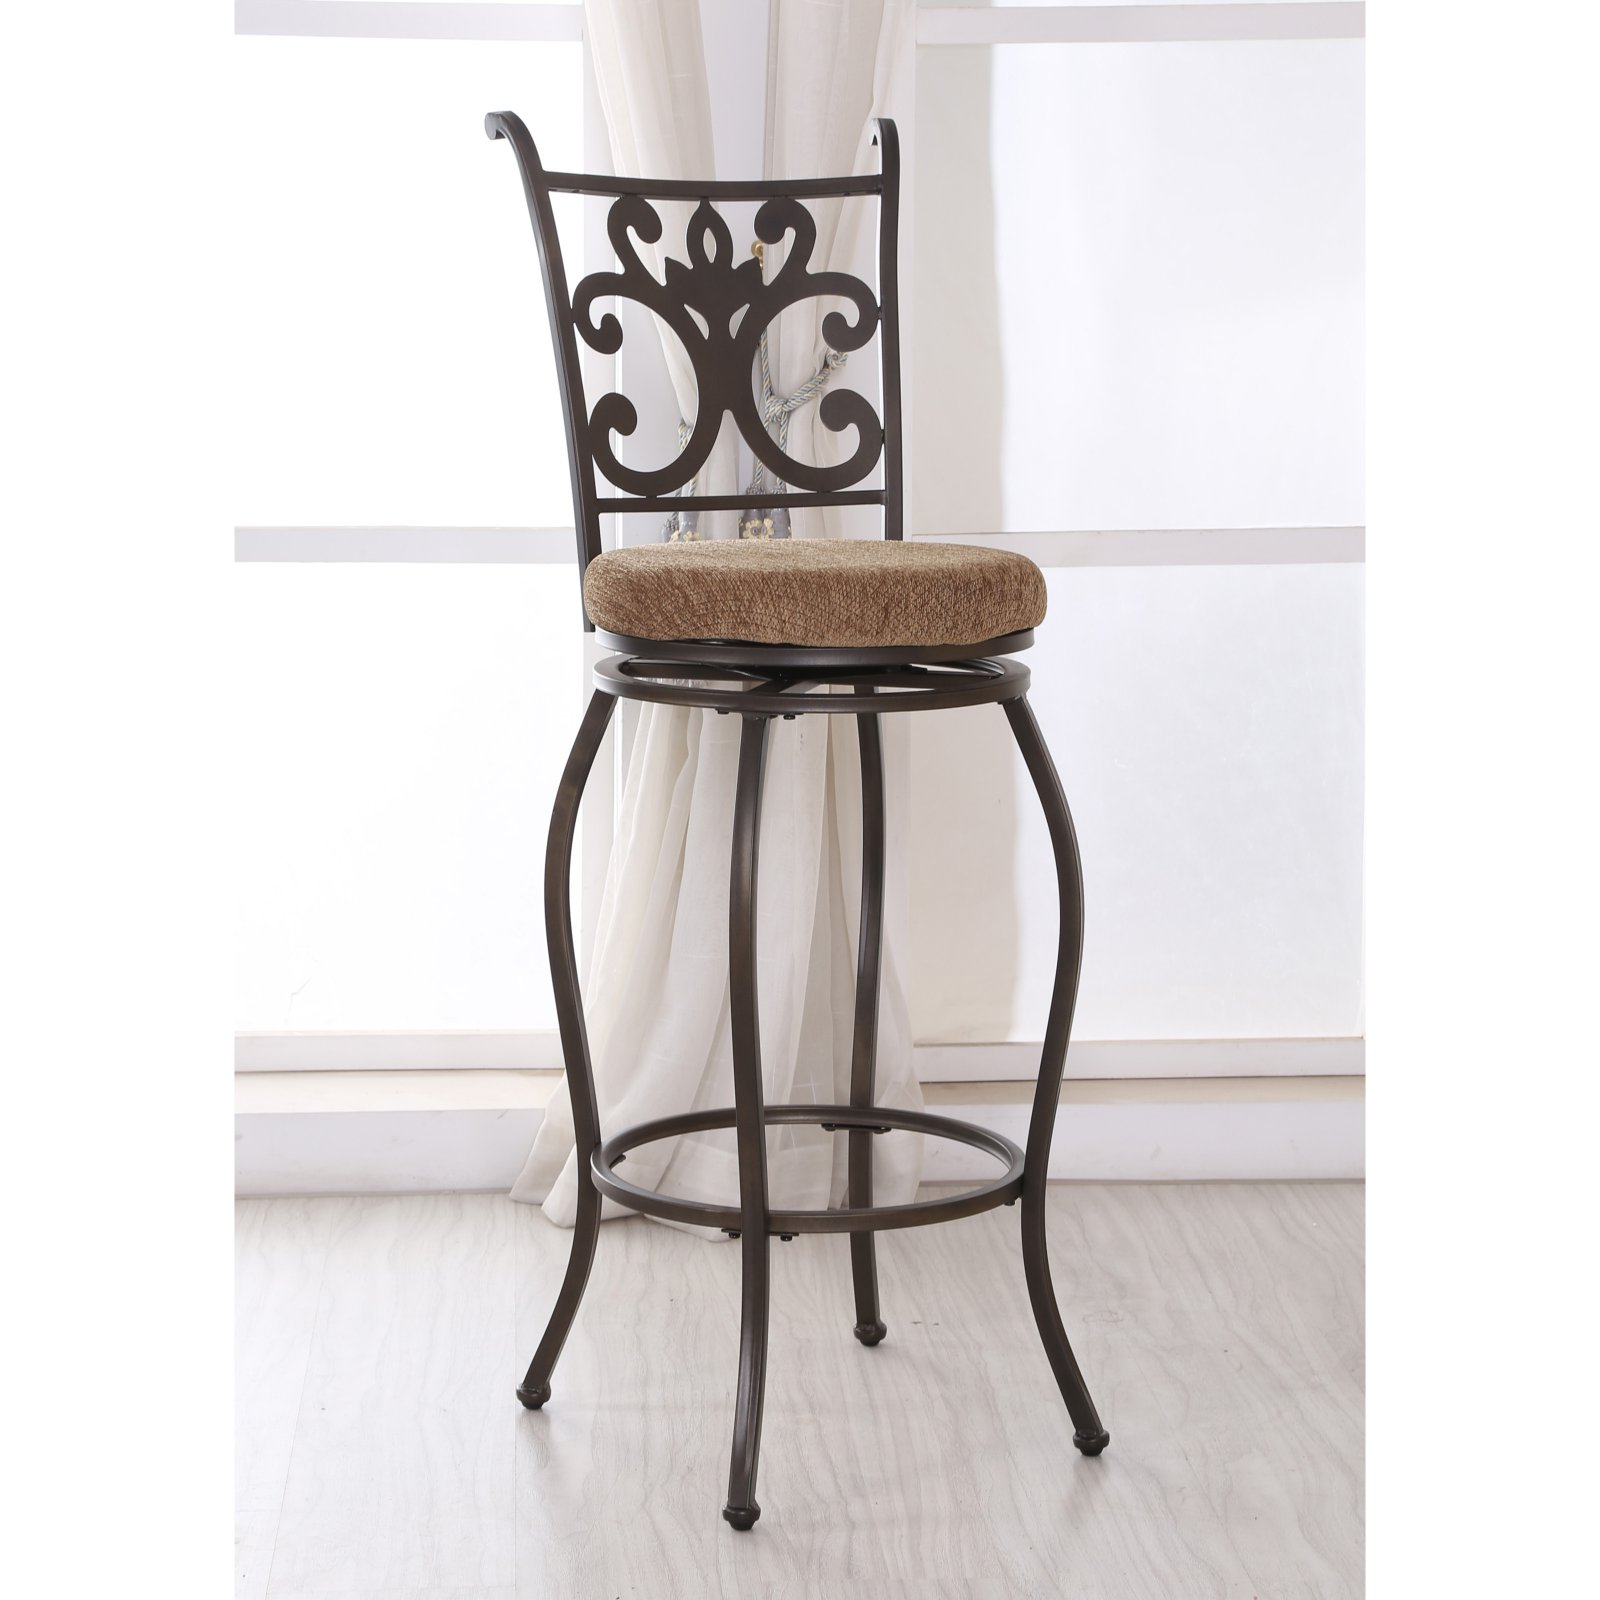 Hodedah Imports 29 in. Bar Stool in Brown